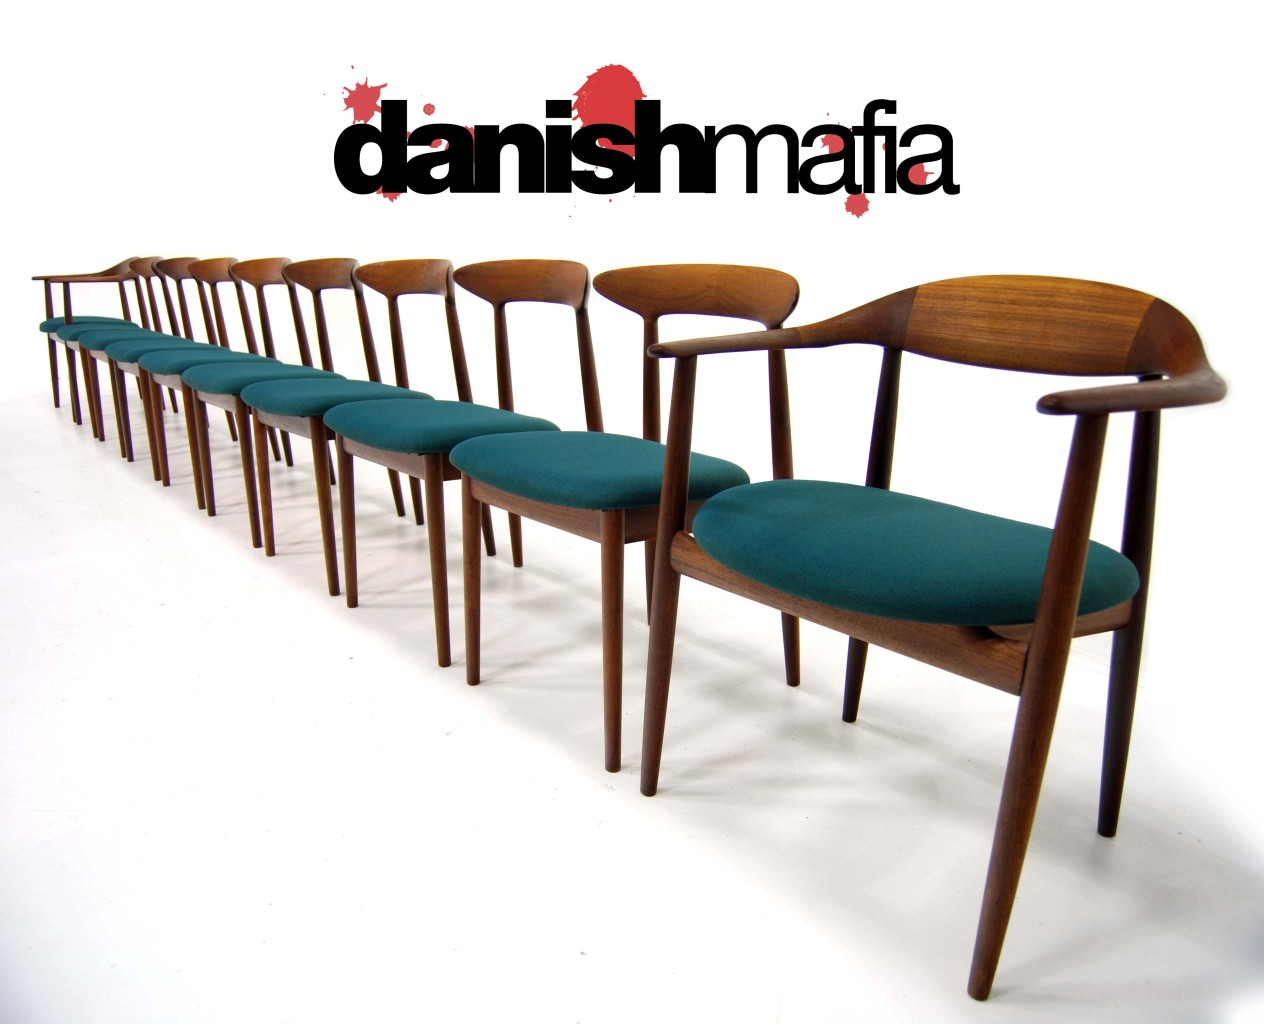 Outstanding Mid Century Danish Modern Teak Dining Chair Set Danish Mafia Ncnpc Chair Design For Home Ncnpcorg